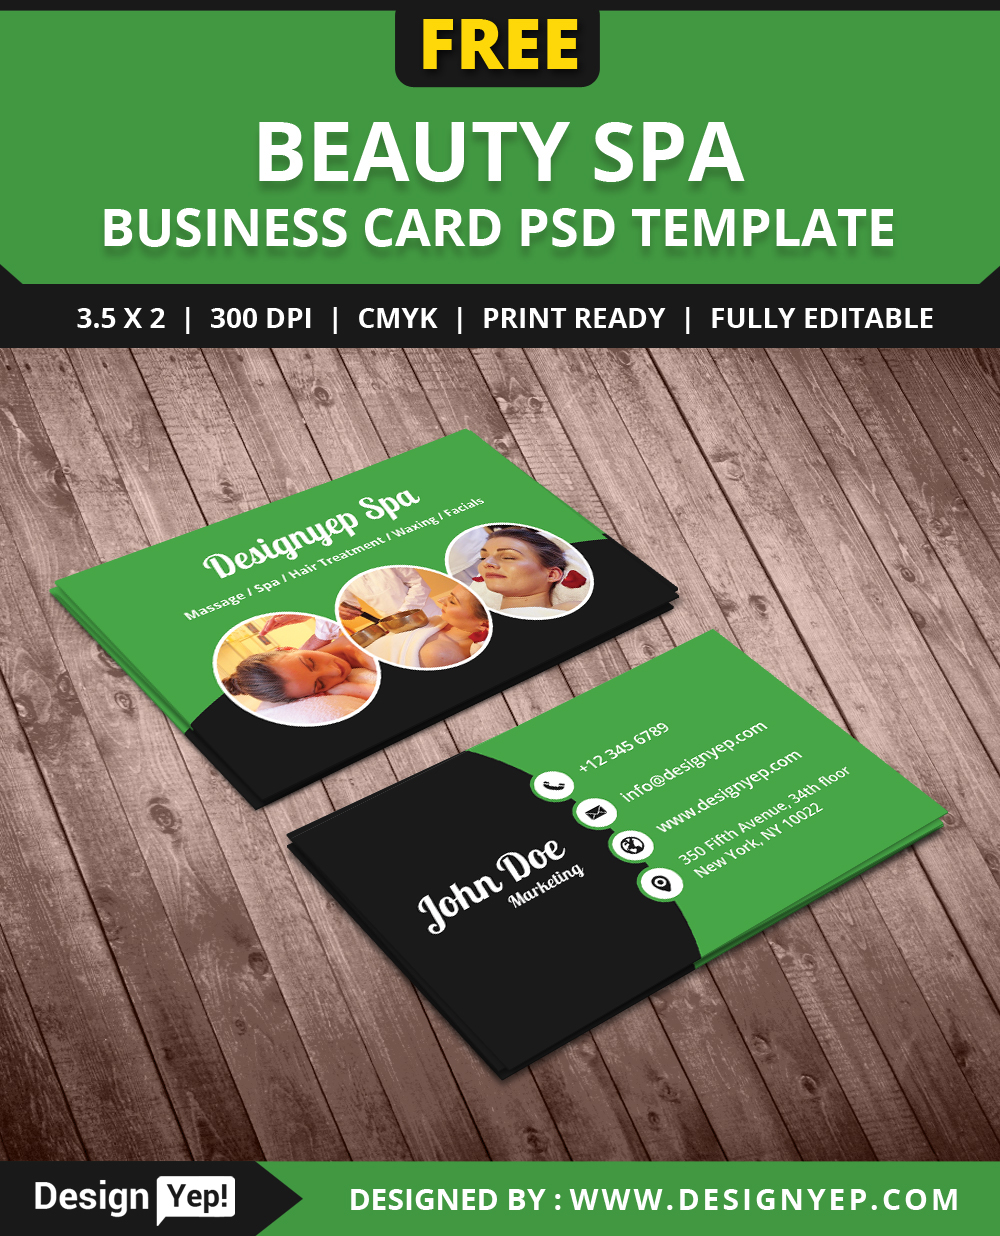 Free beauty spa business card psd template on behance free business card template for beauty and spa service this card is also perfect for massage centre hair salon hotel physiotherapist etc magicingreecefo Images